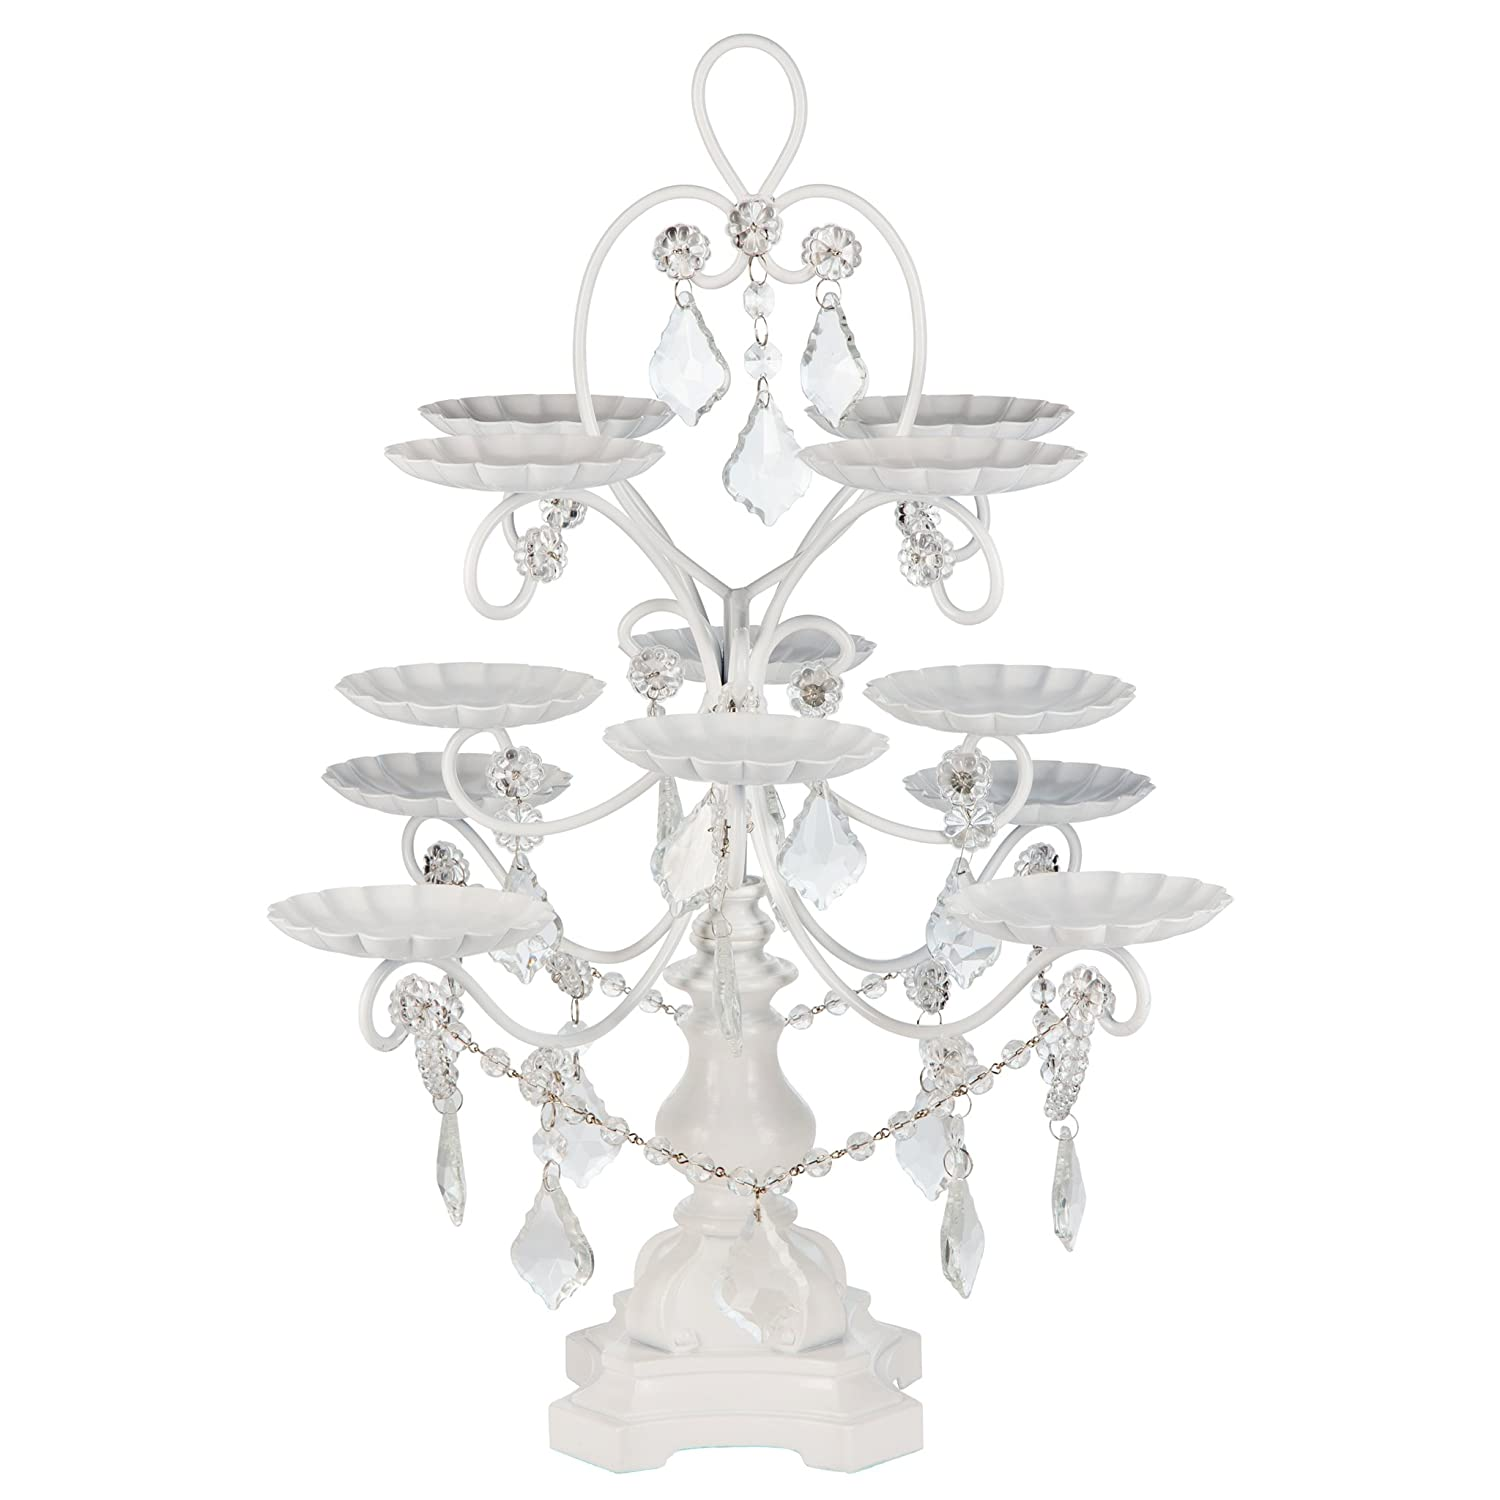 Amazon madeleine collection 12 piece cupcake stand dessert amazon madeleine collection 12 piece cupcake stand dessert display tower with crystal dangles white cupcake stands arubaitofo Image collections